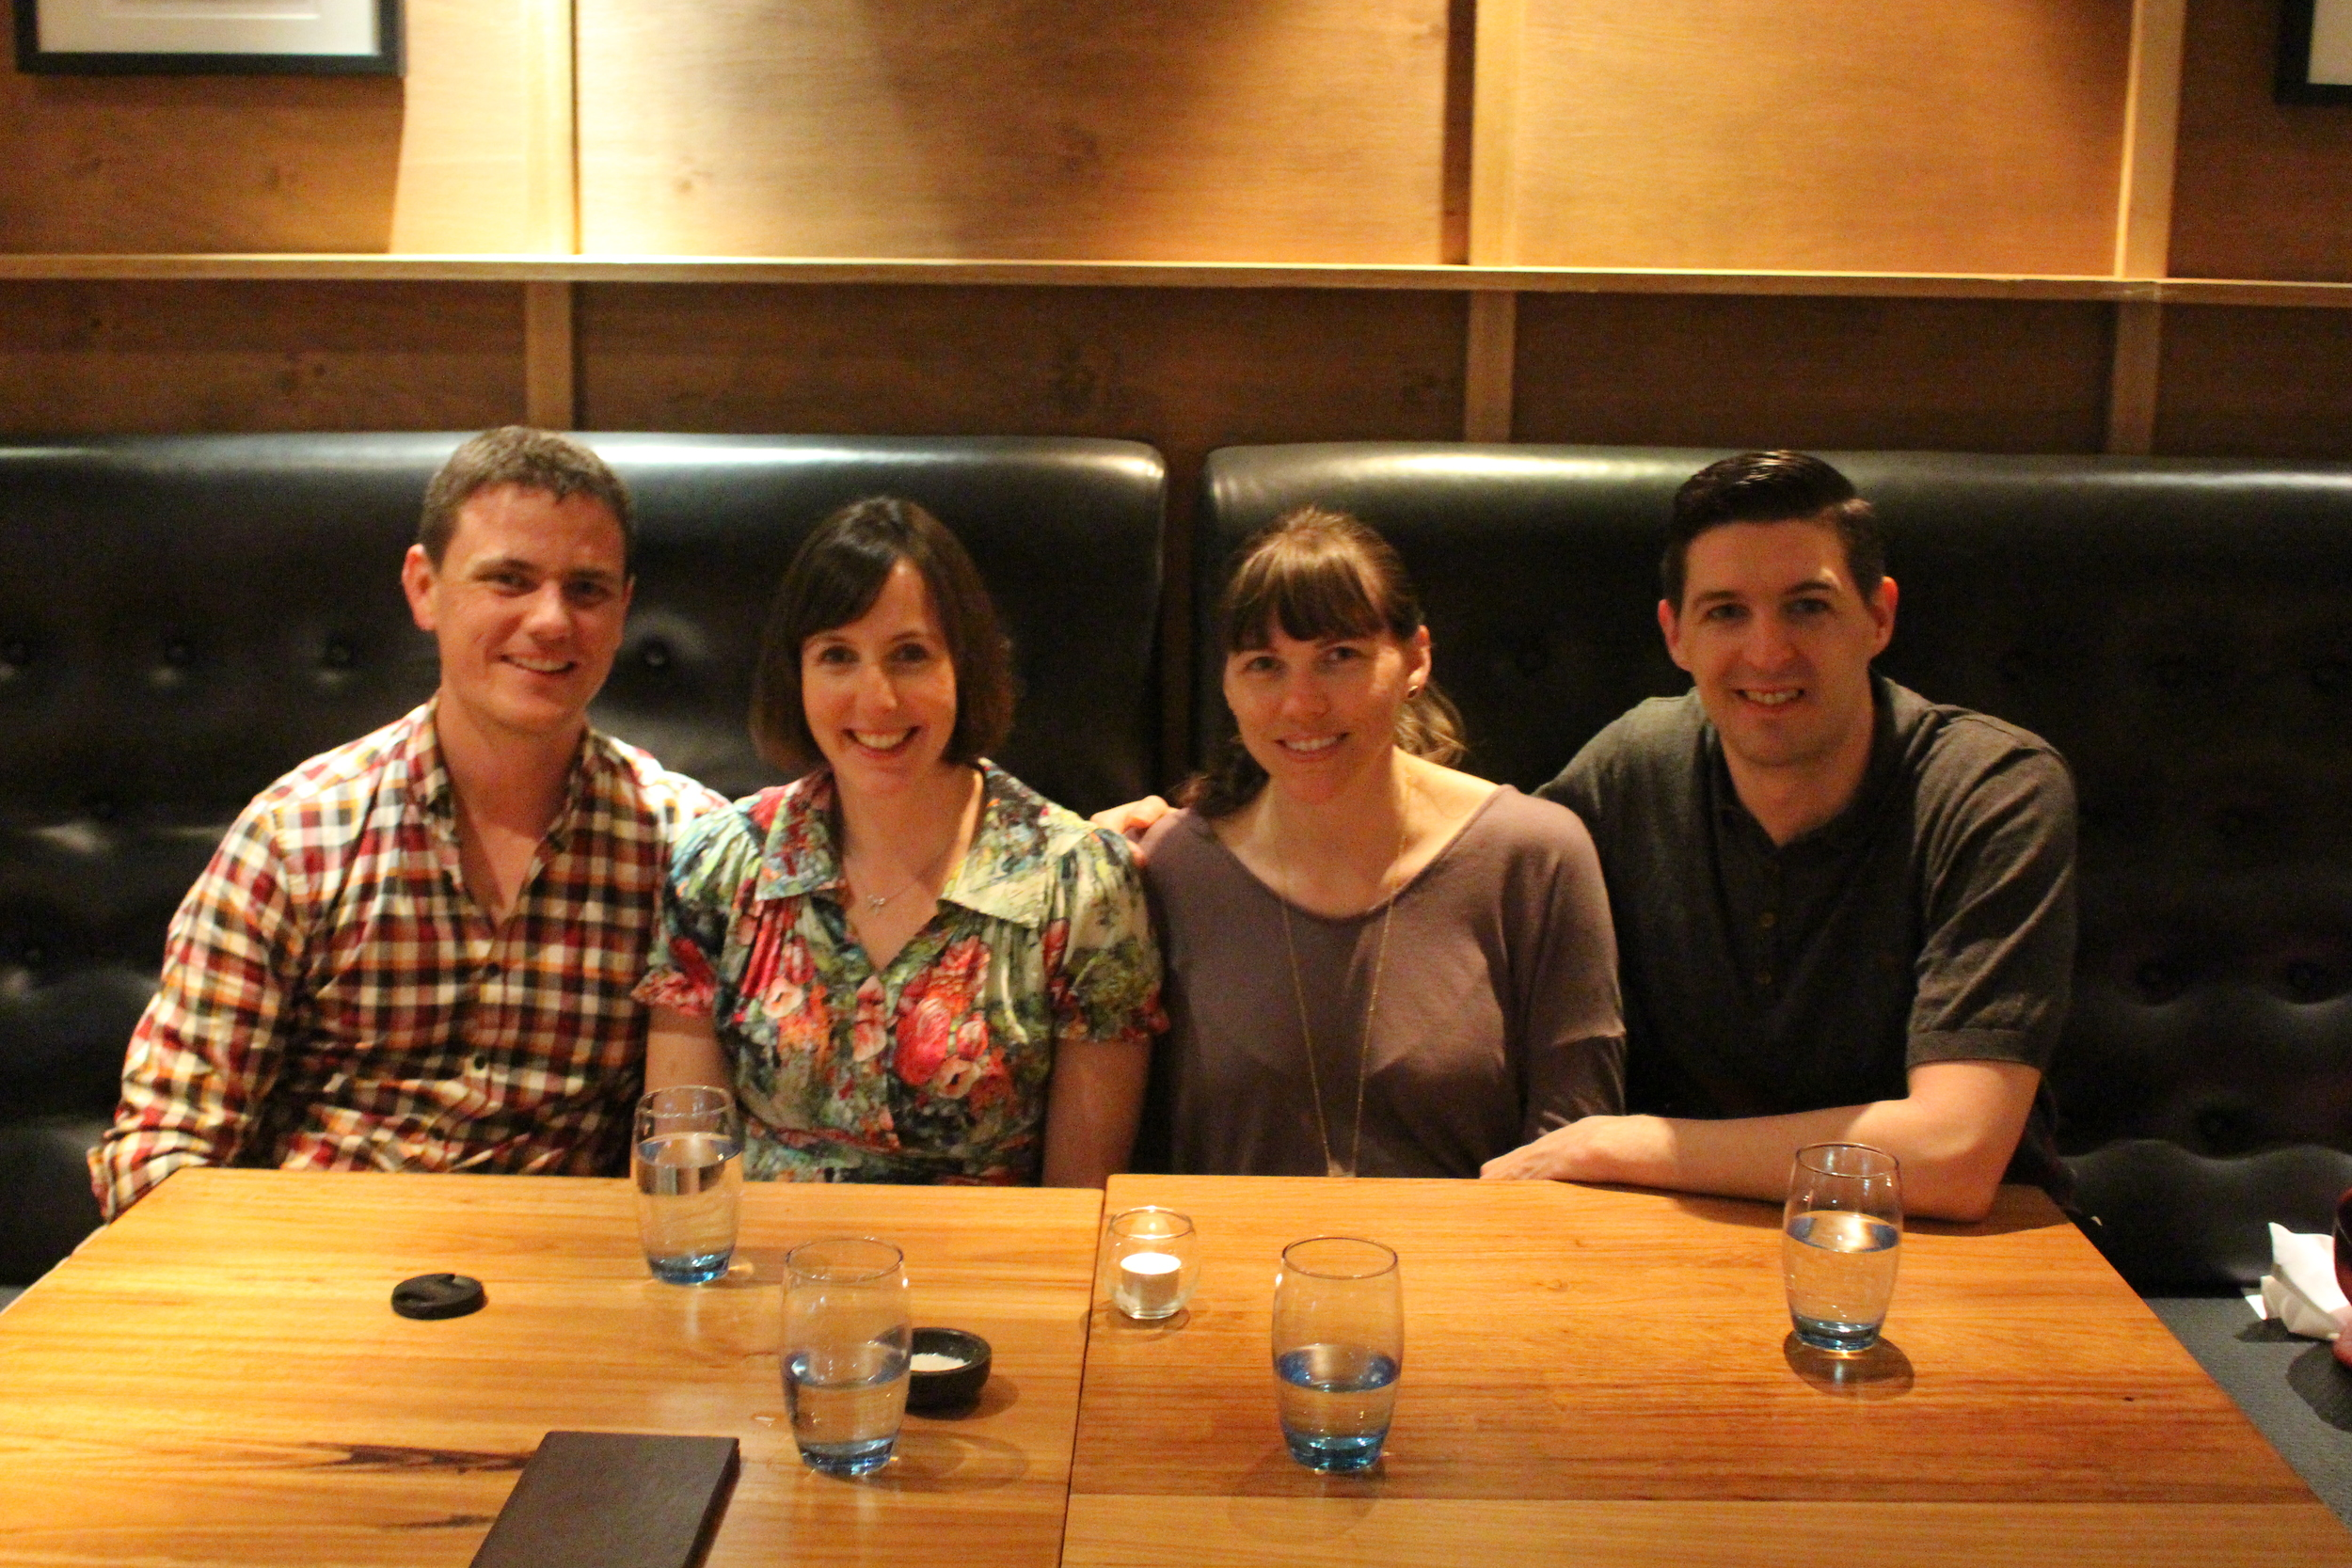 The Auld's, Ben and Megan with us at Public in Brisbane